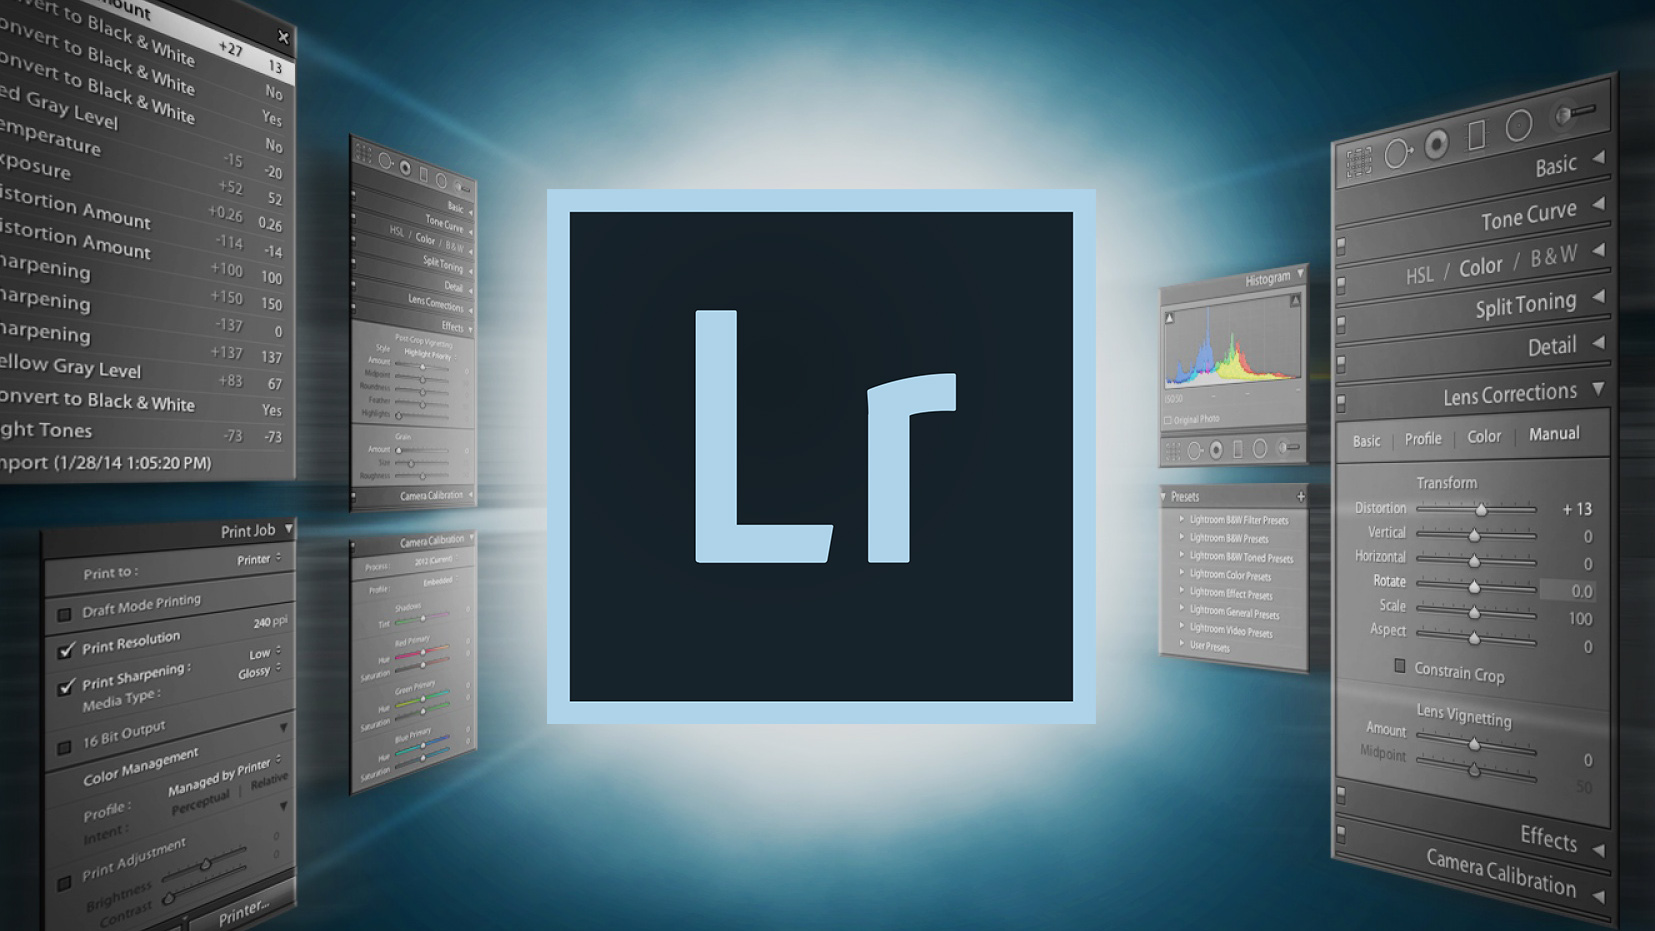 Adobe Photoshop Lightroom 10.2 Crack + Serial Key Download{2021}